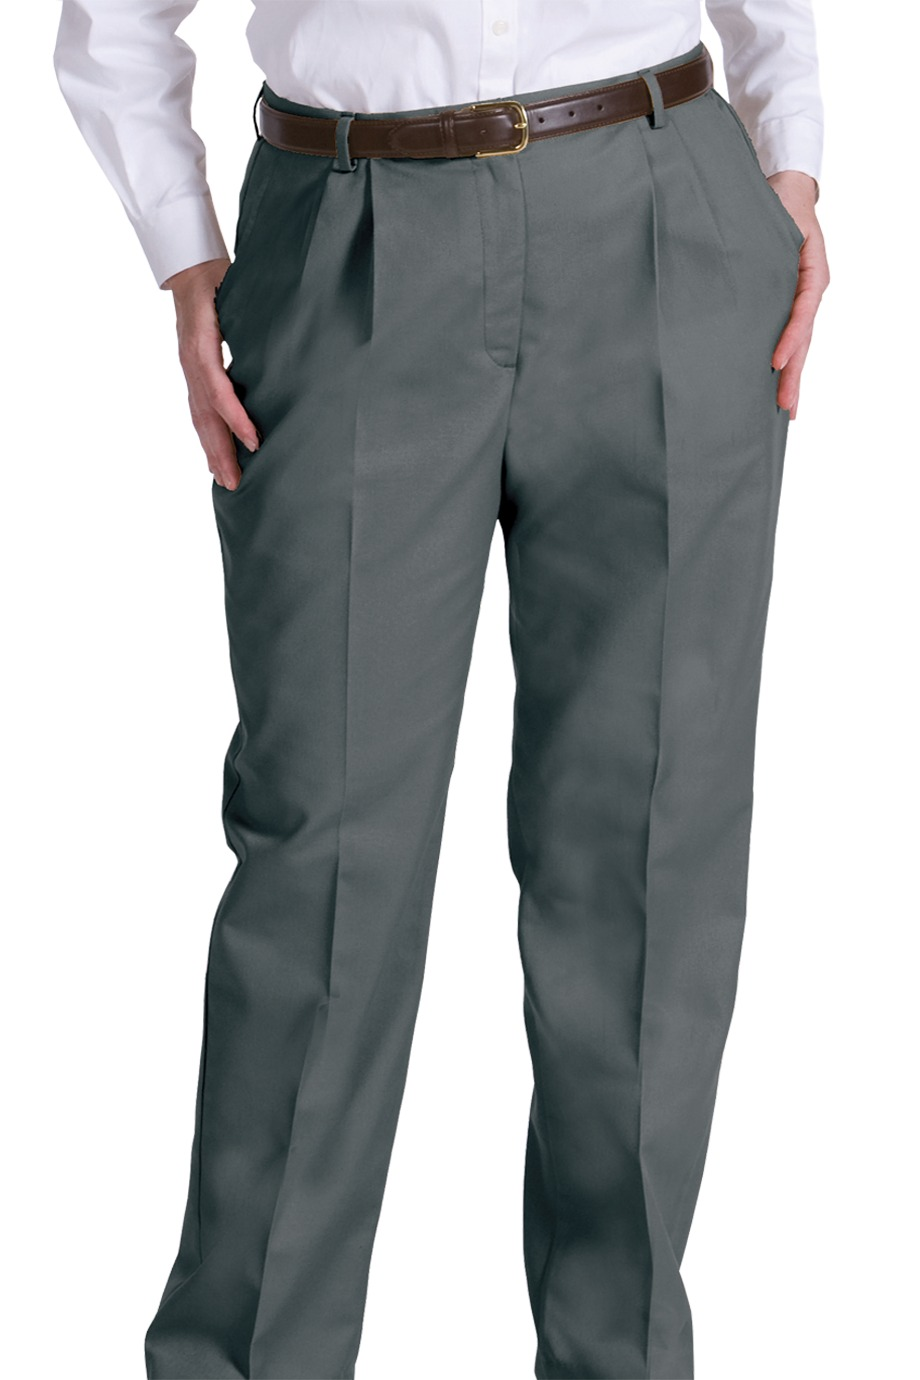 edaa890df4f Edwards Garment 8619 - Women s Business Casual Pleated Pant  29.60 -  Women s Pants